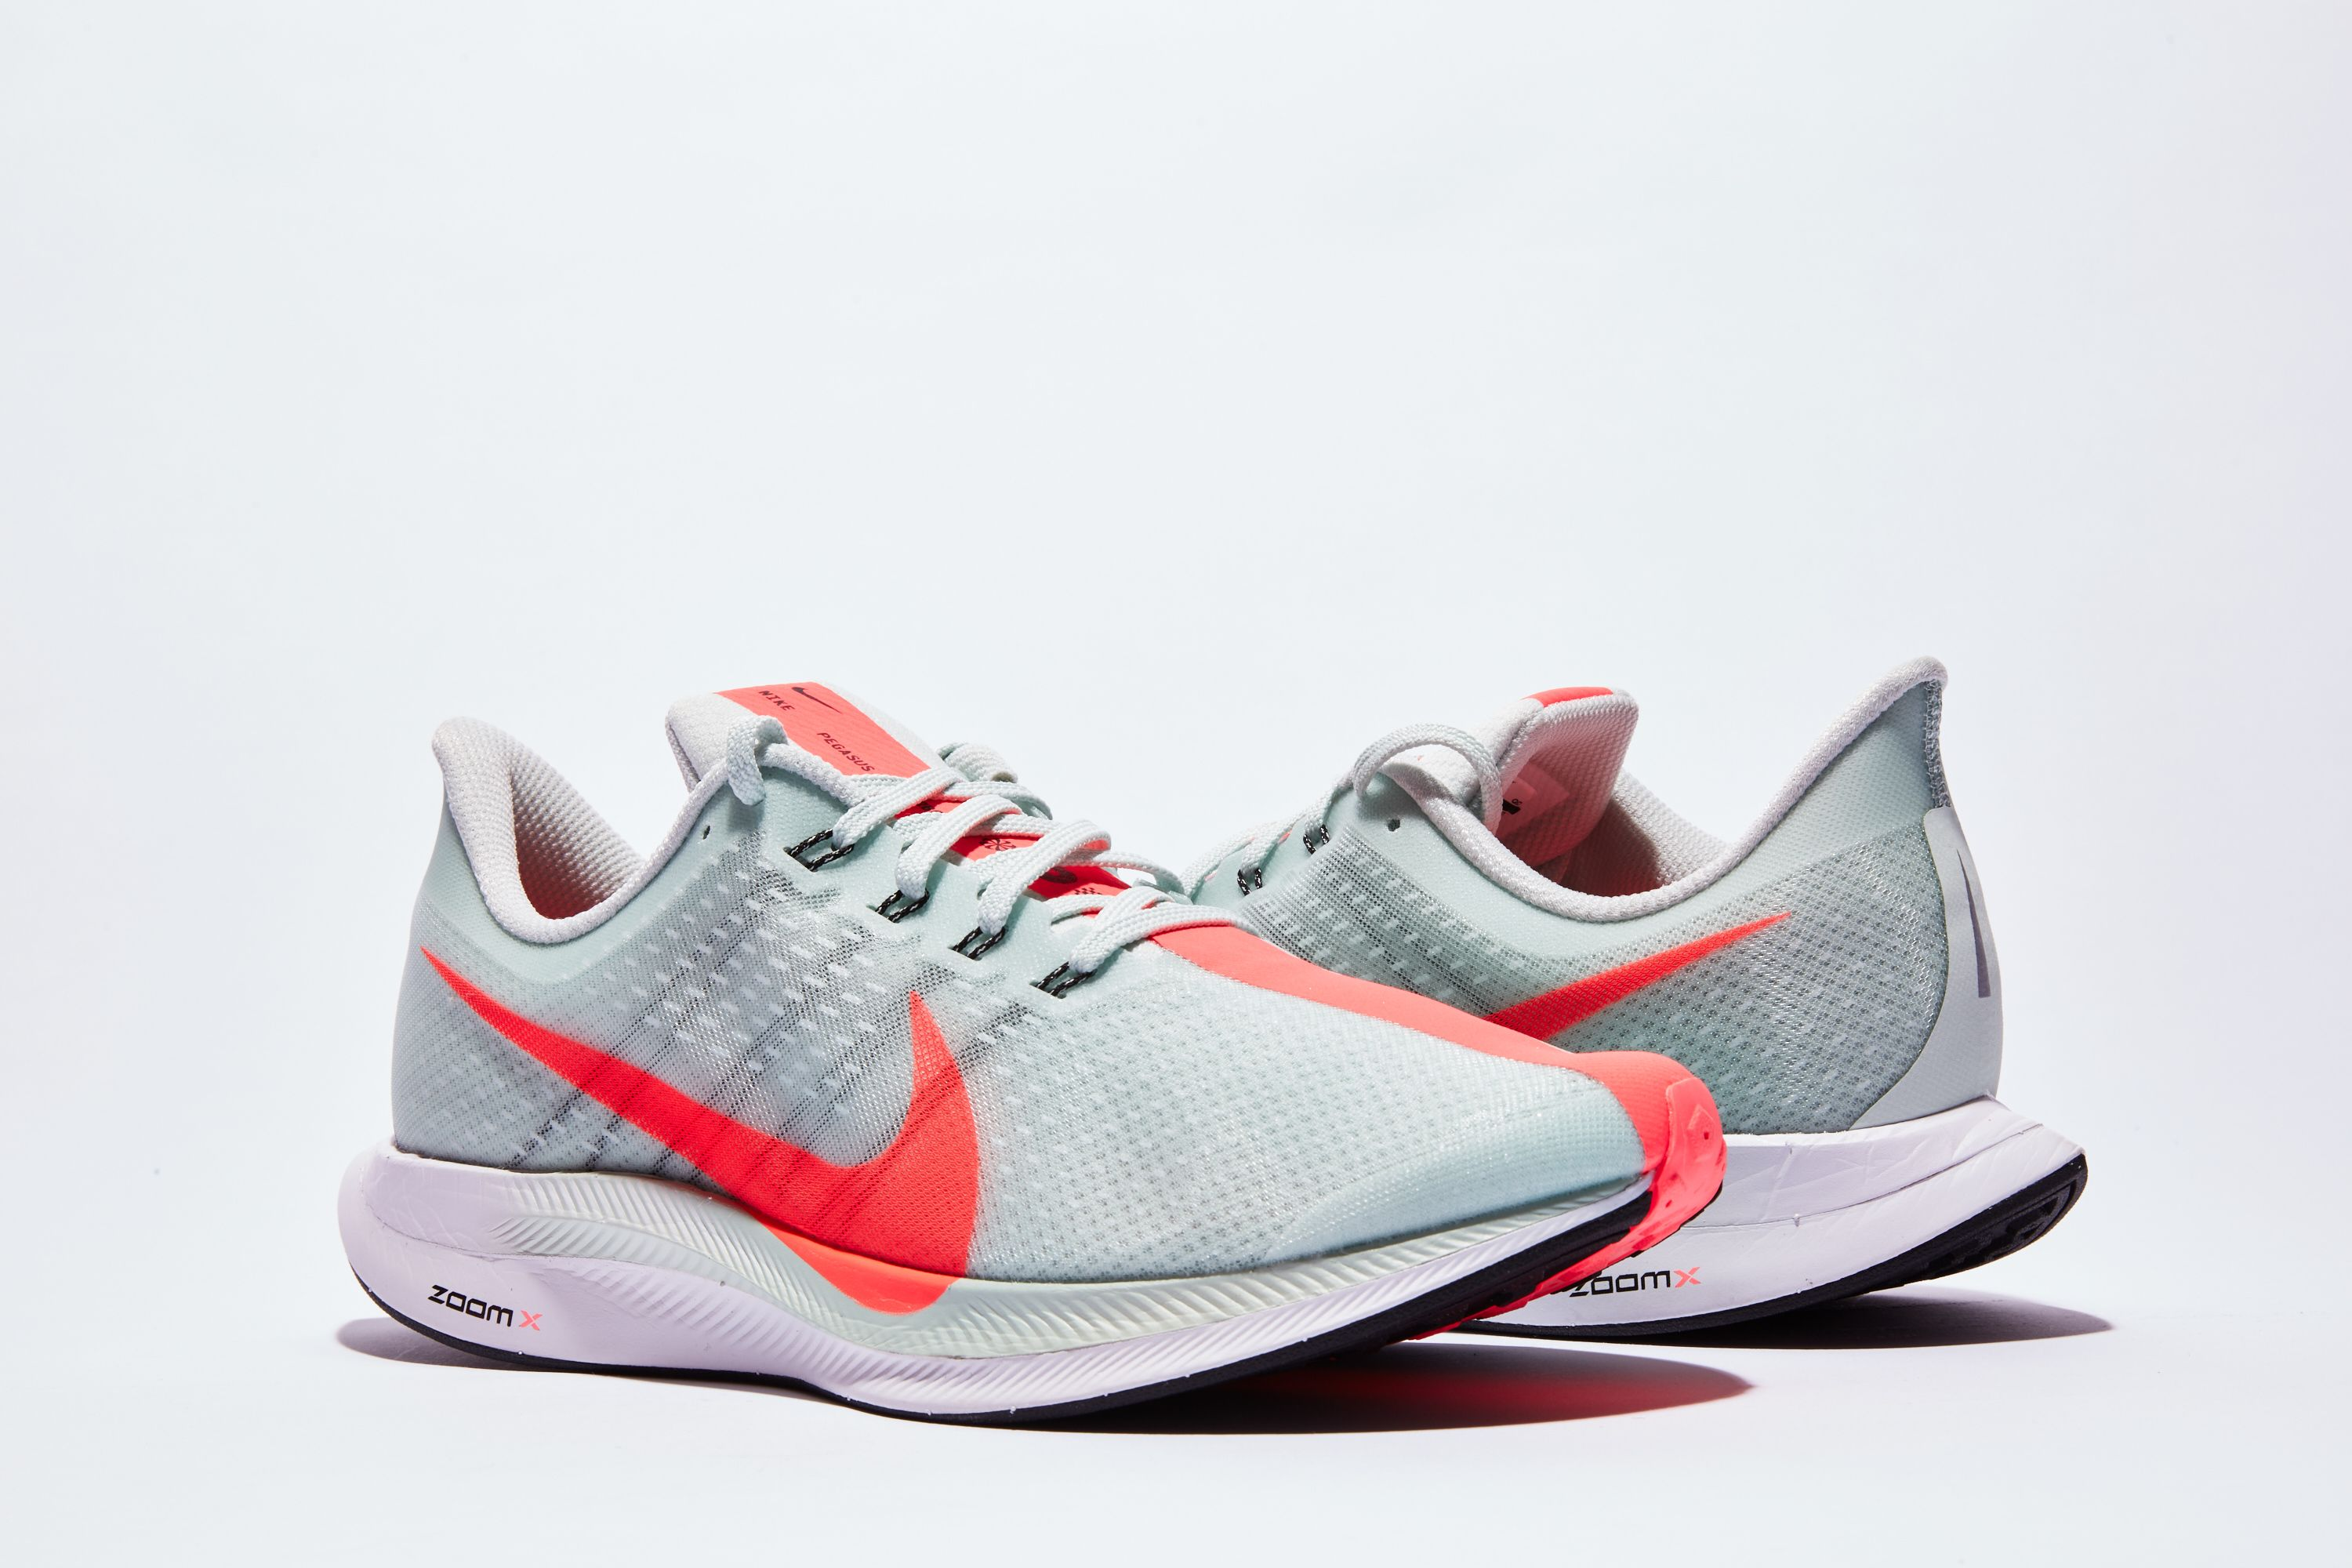 0b5e7b642f81 Nike Zoom Pegasus 35 Turbo - Running Shoes for Speed